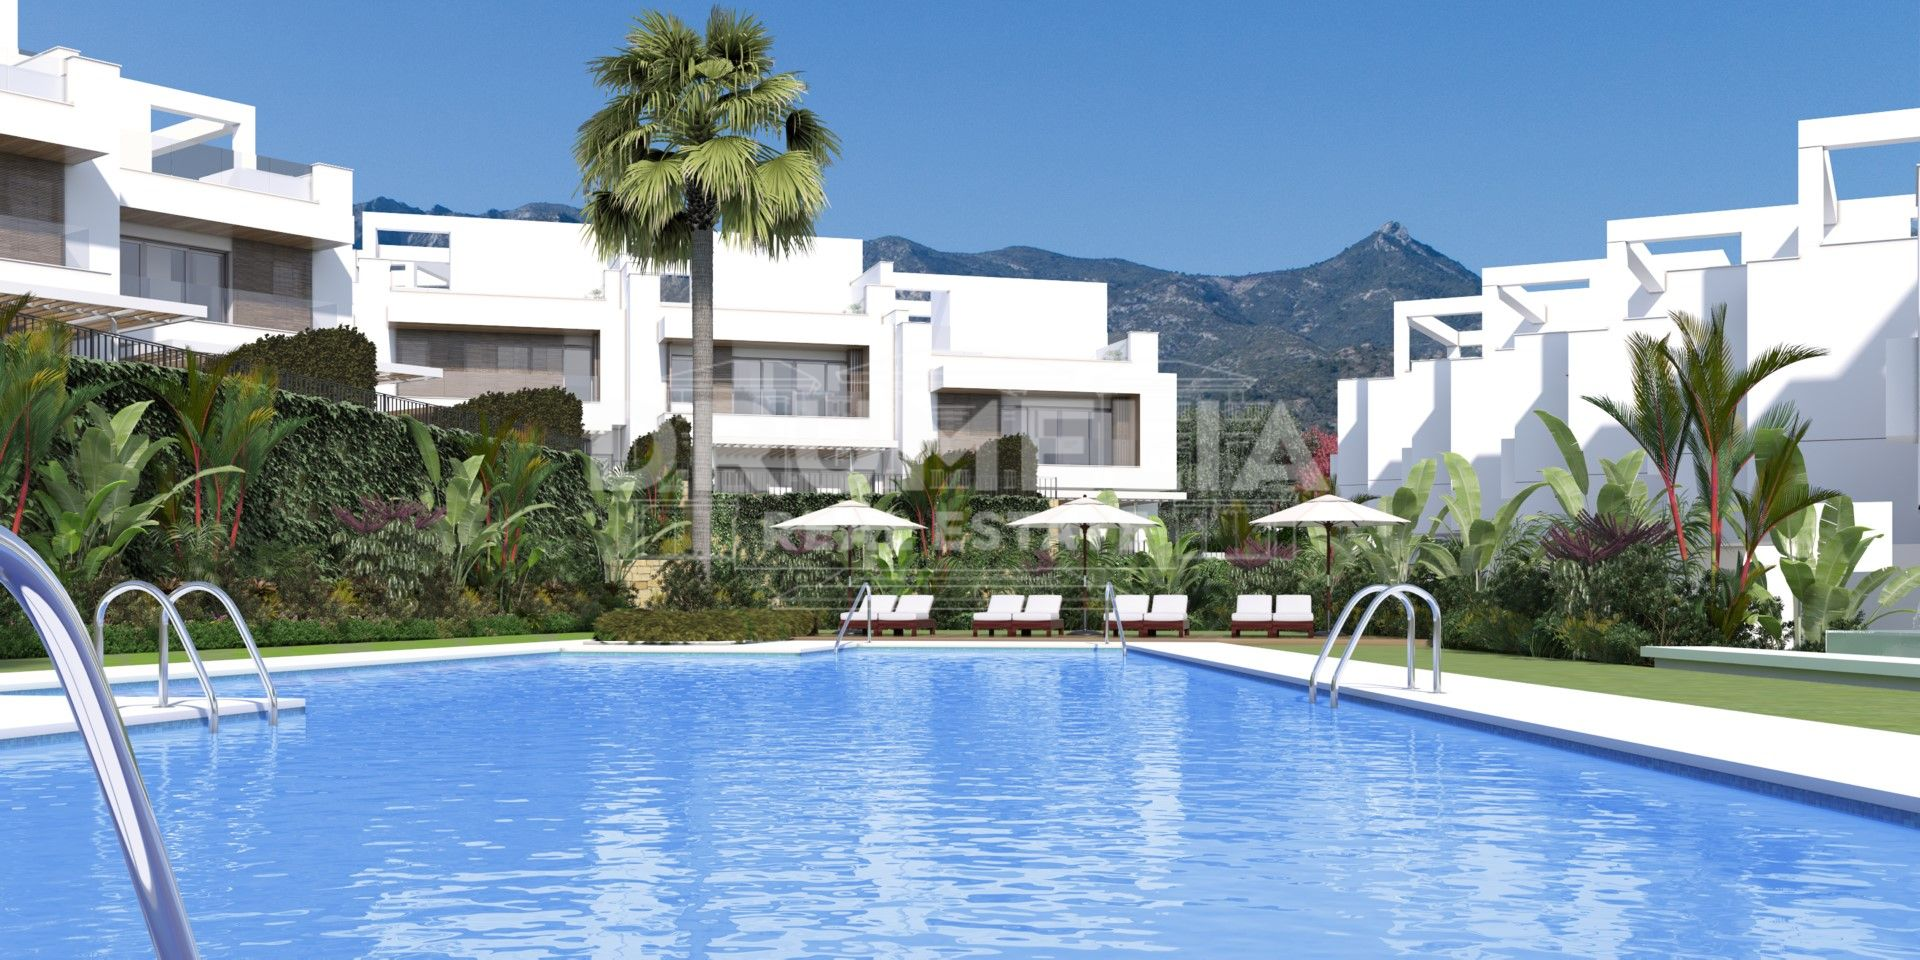 Marbella, Brand-New Magnificent Contemporary Villa, Marbella (Marbella)